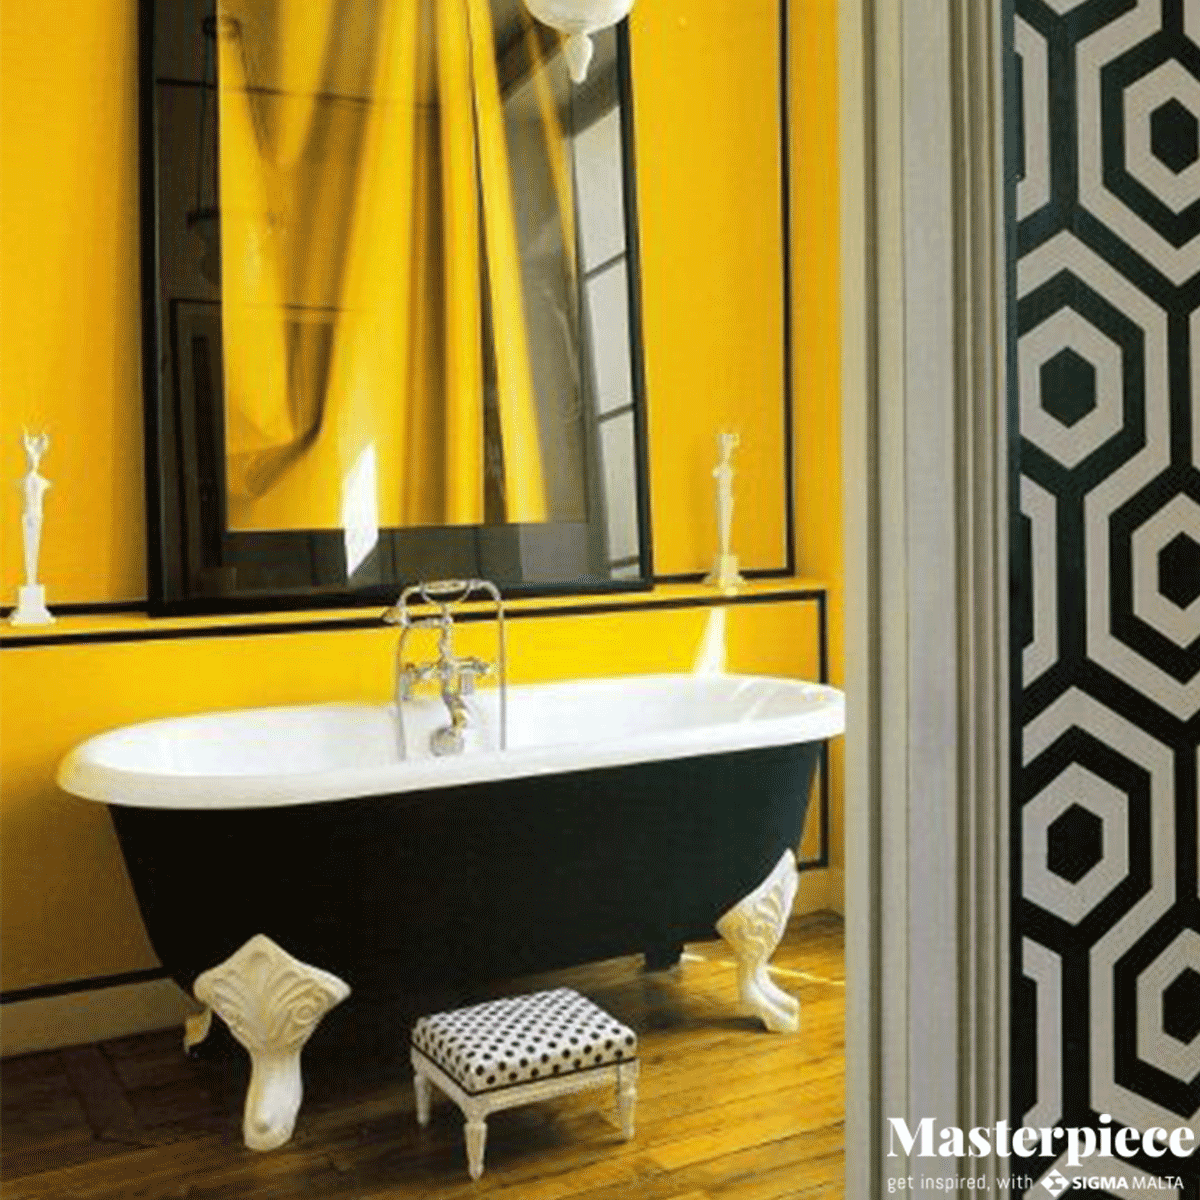 Refresh your bathroom</br><span> in time for Spring.</span>